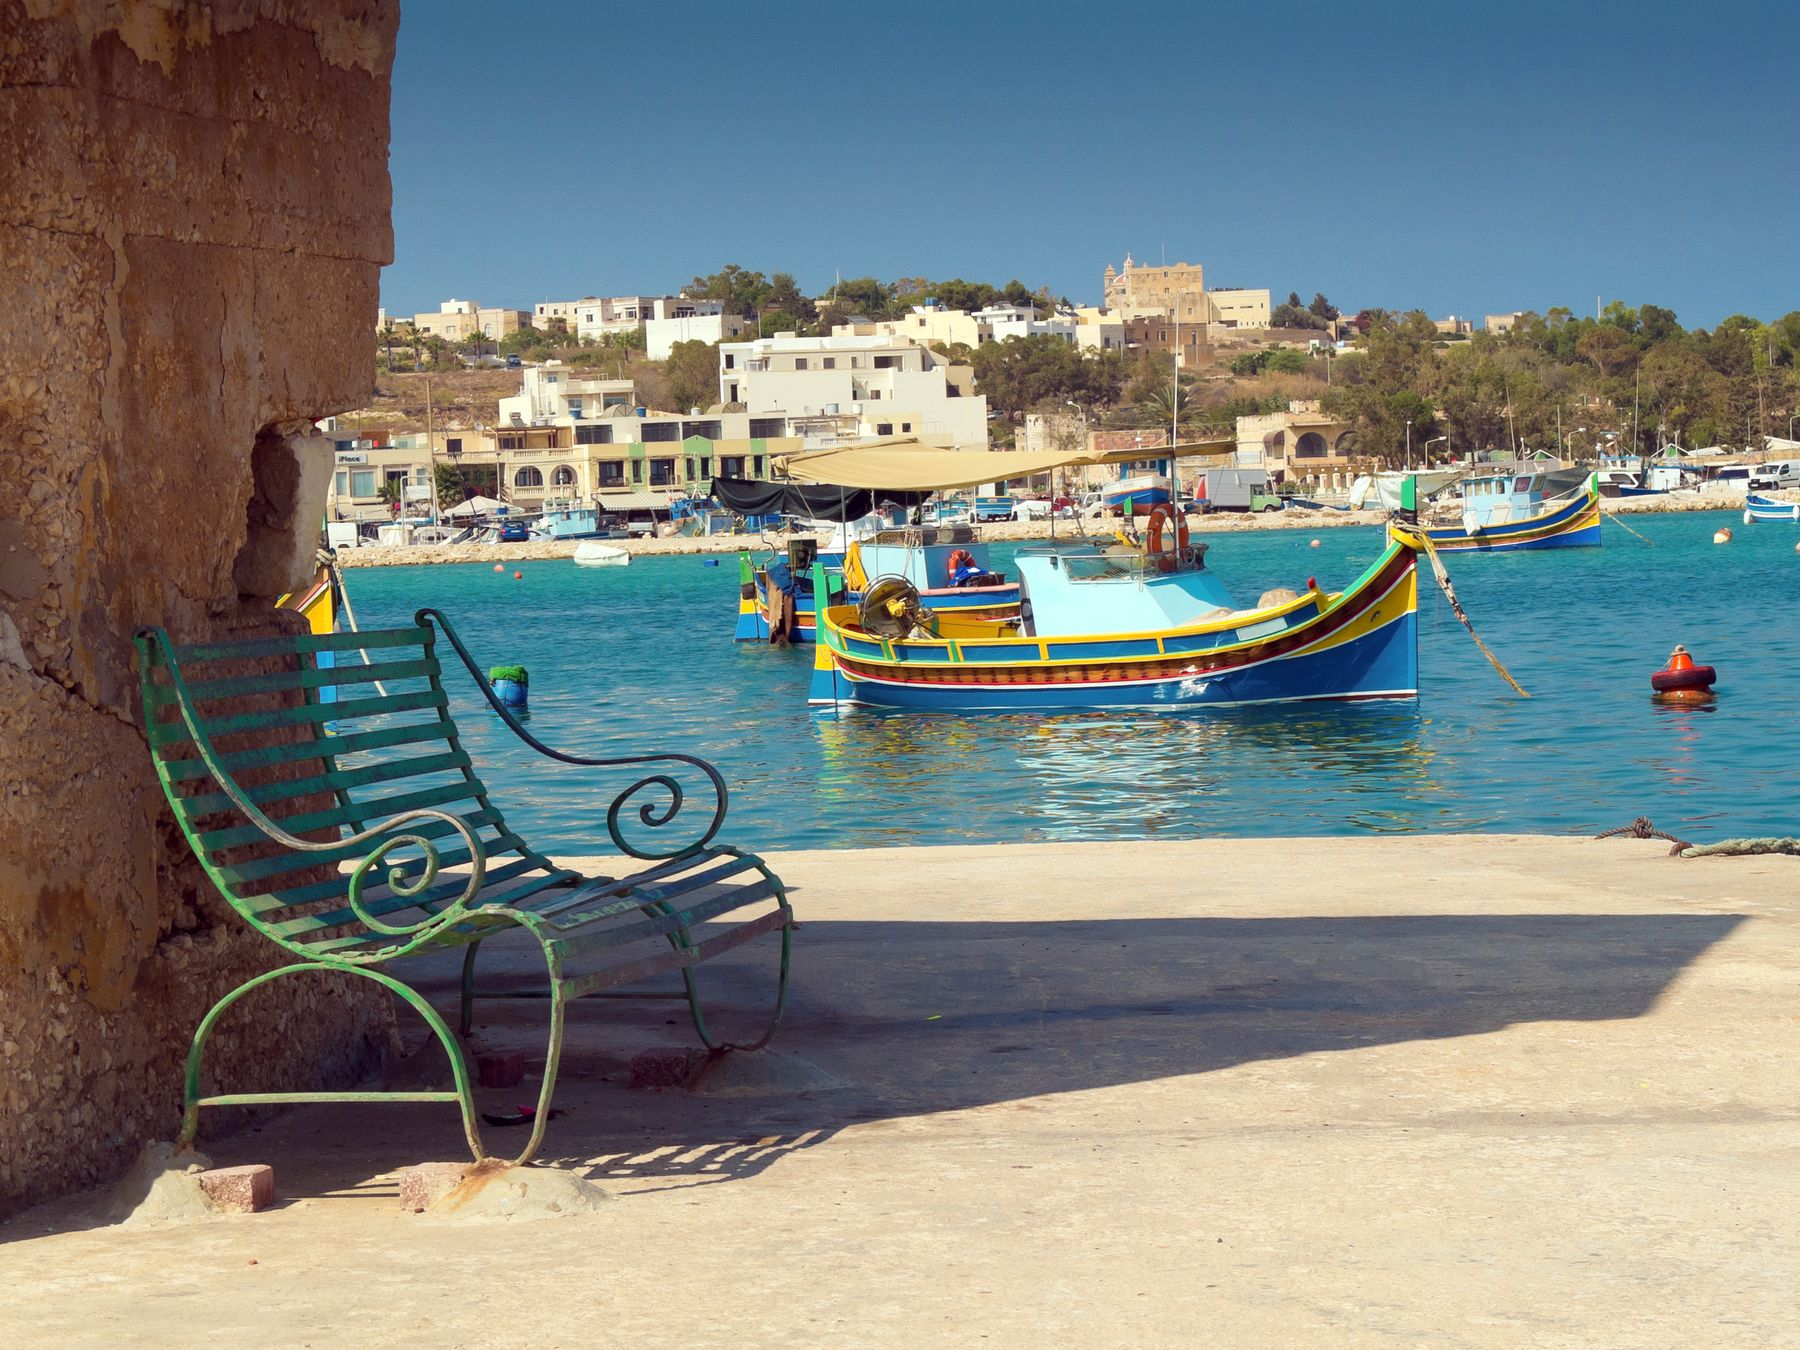 Colourful boat floating in a Malta harbour.